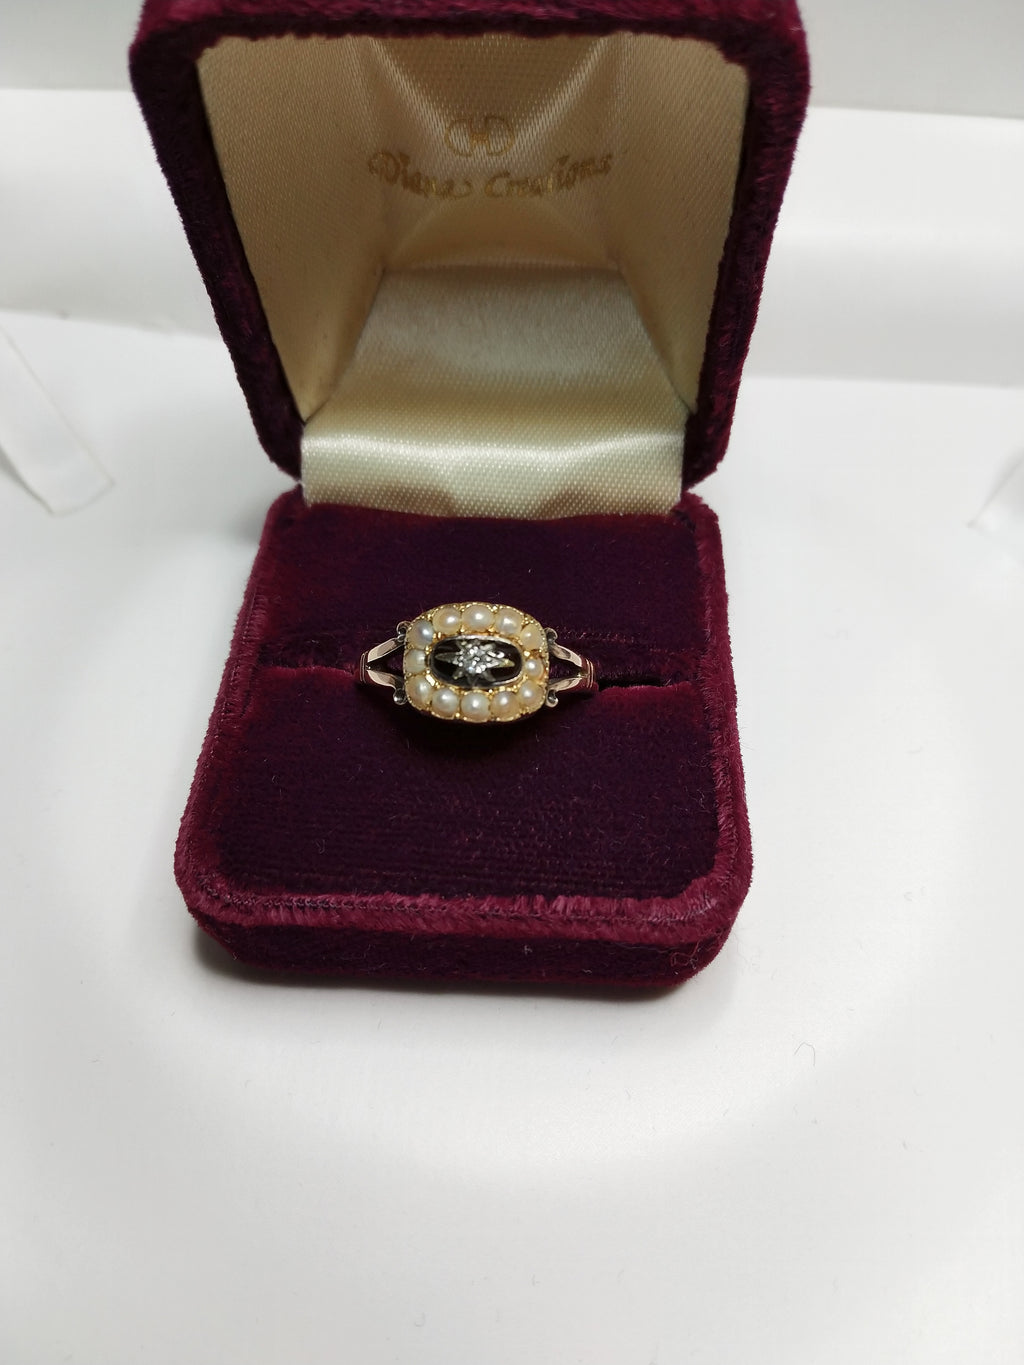 3.1g 9K Yel Vintage Order of Eastern Star Masonic Ring with seed pearls and CZ.